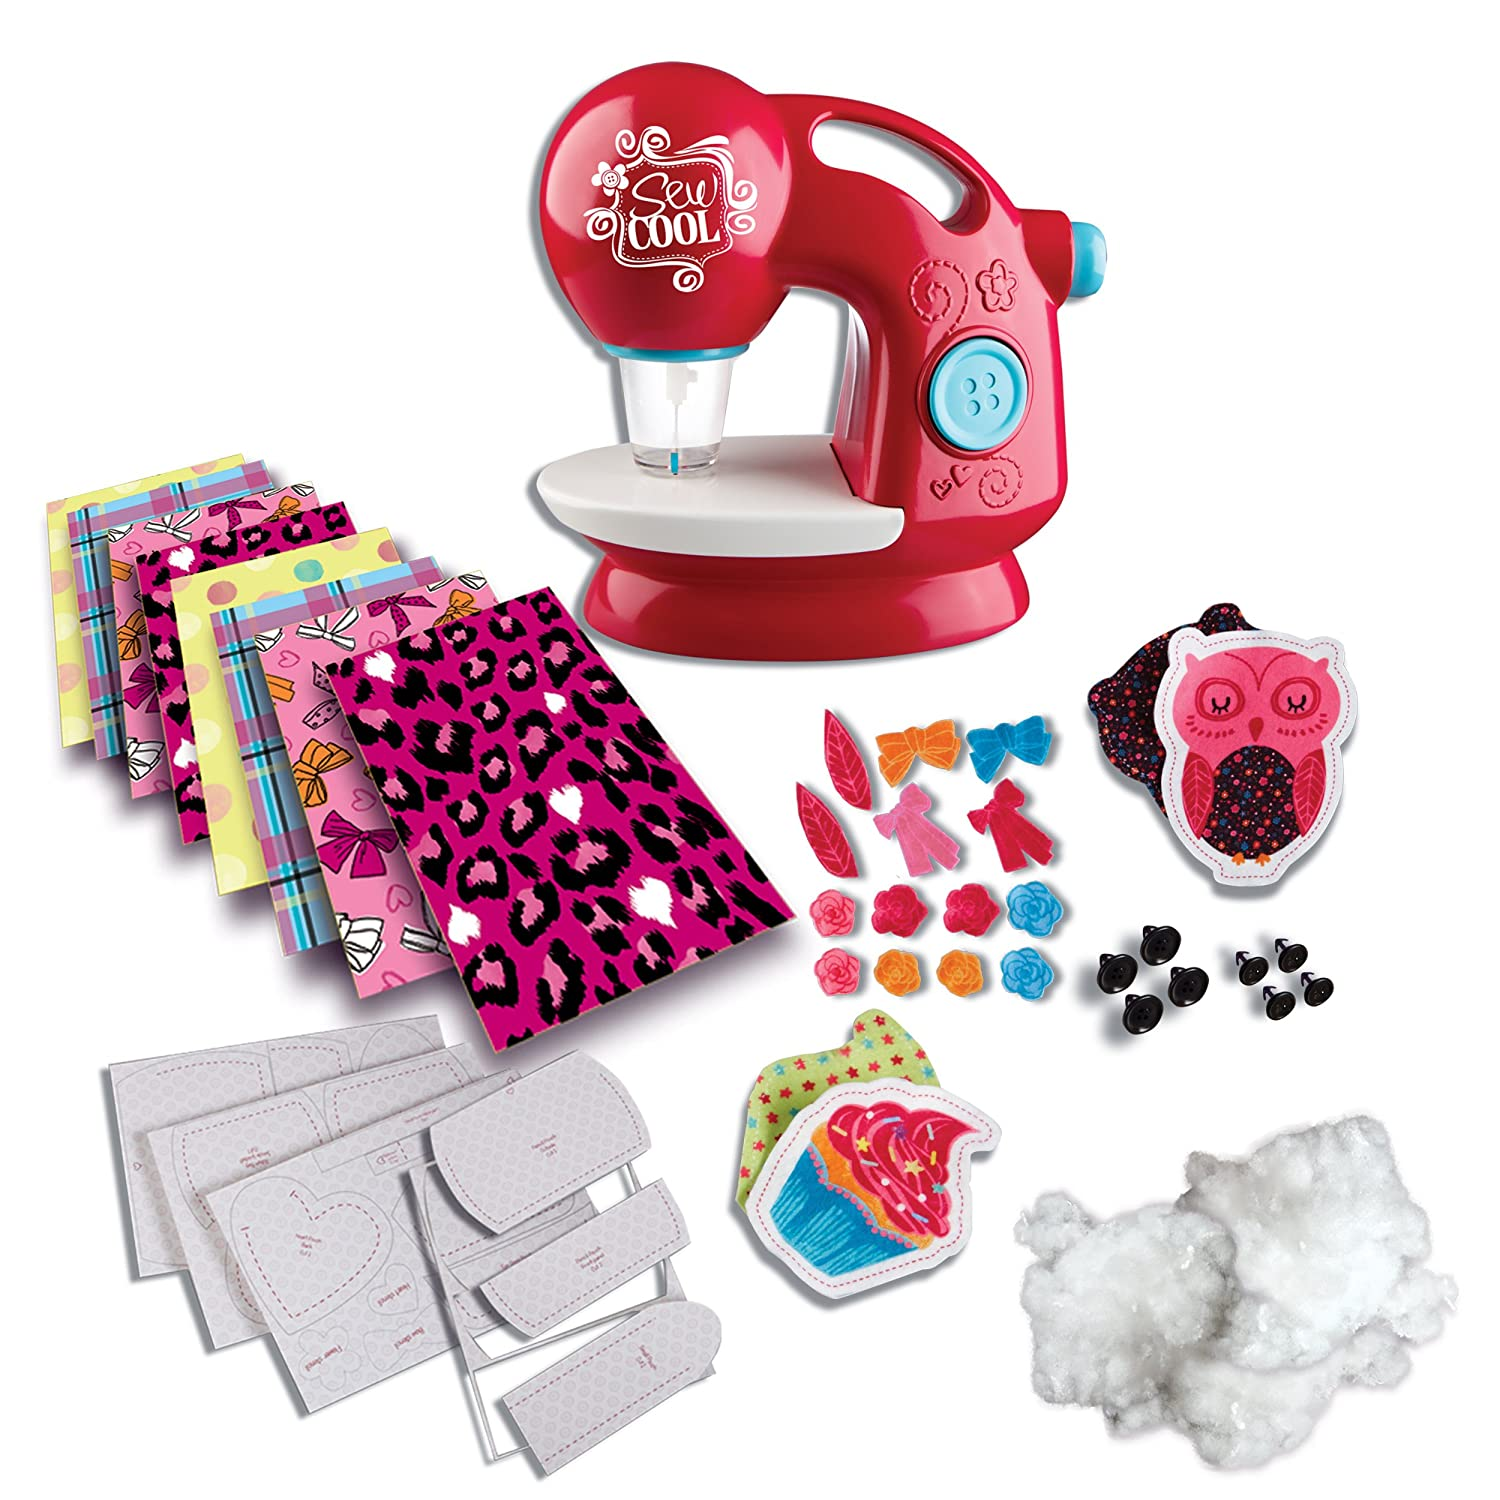 [ソークール]Sew Cool STF ACK Machine 20067403 [並行輸入品] B00IGLQWVQ